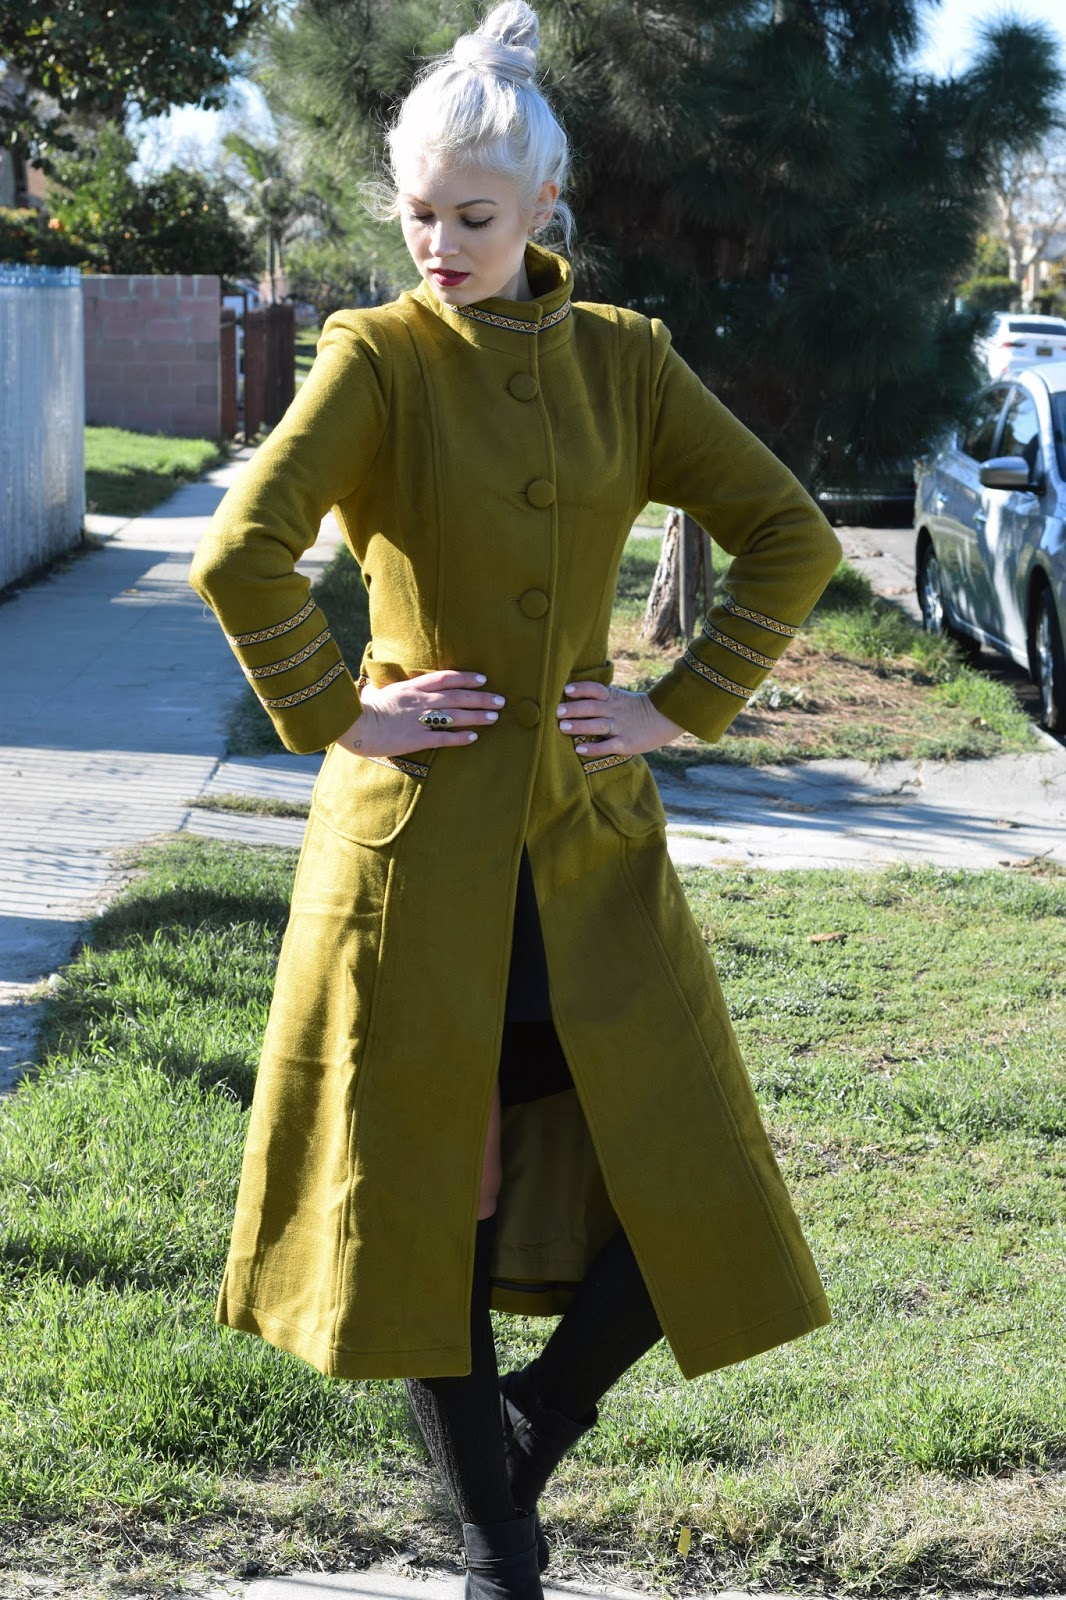 Green coat, jolly chic, german blondy, how to wear a green coat, long coat, heels